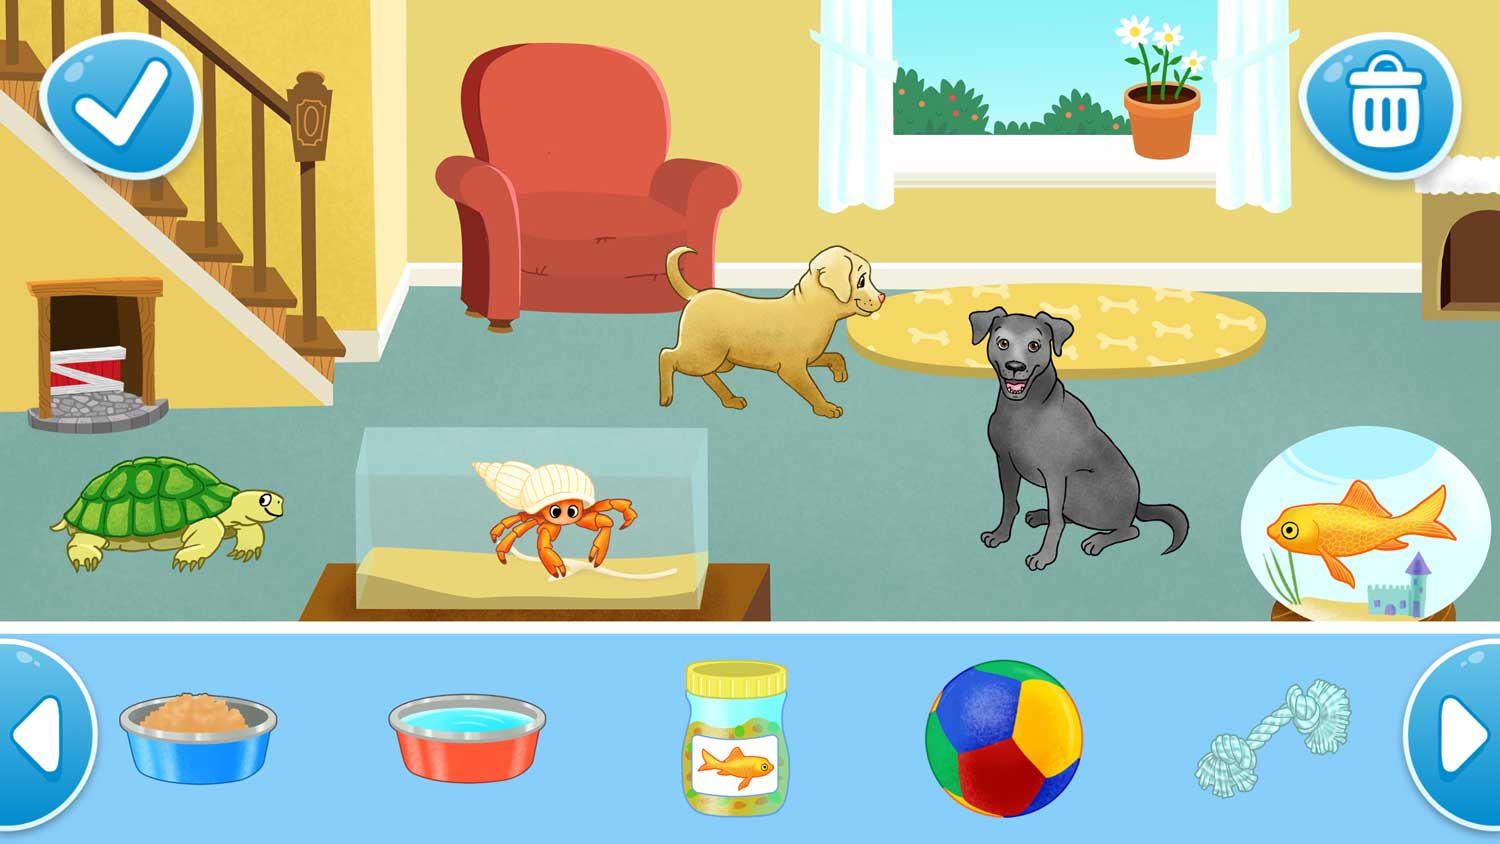 Pets at home, illustrated by Delphine Henault